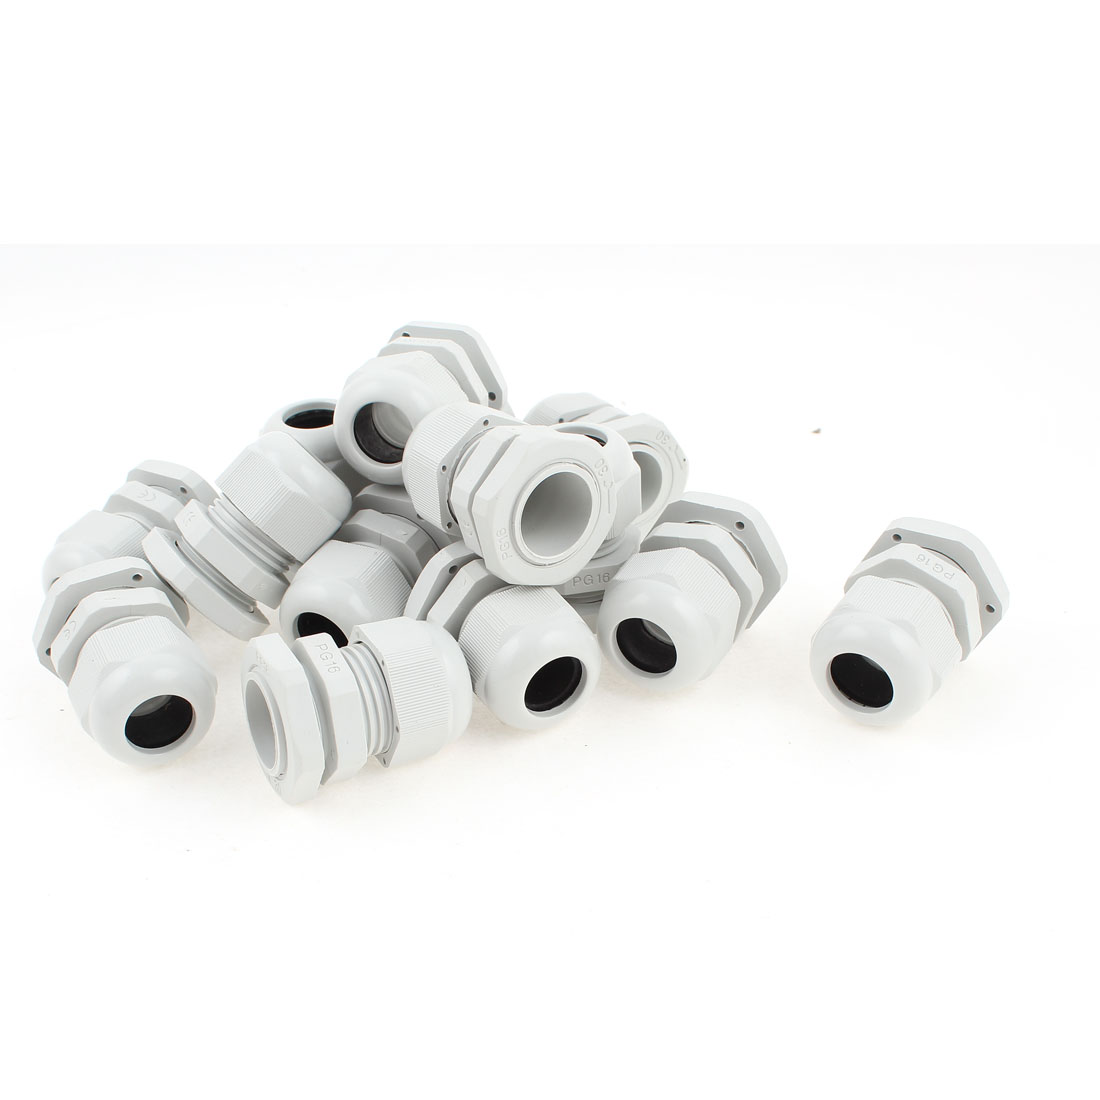 15 Pcs PG16 10~14mm Dia Cable Wire Waterproof Connector Gland White